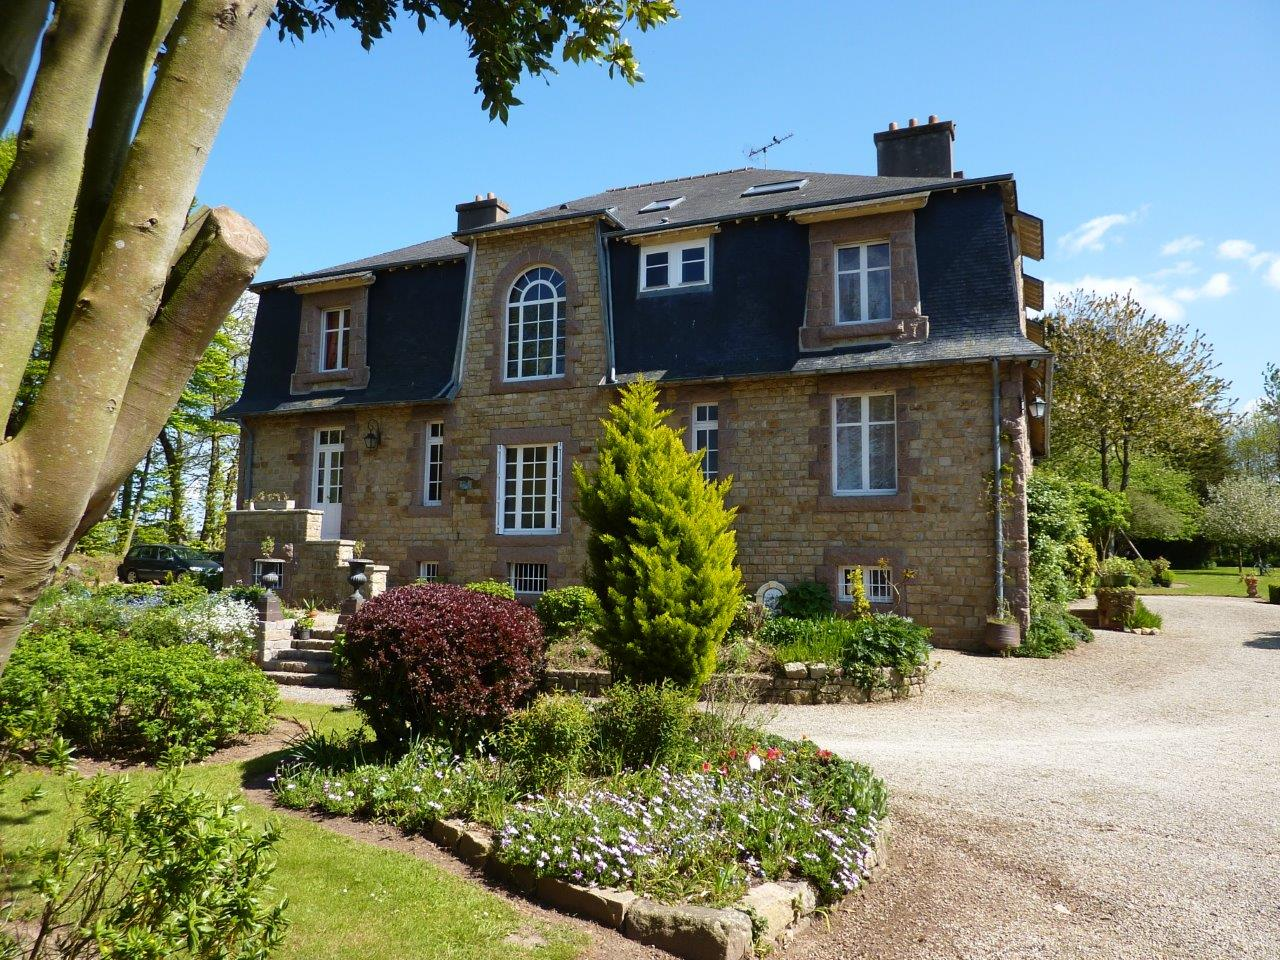 Single Family Home for Sale at Maison de Maître Other Brittany, Brittany 22300 France